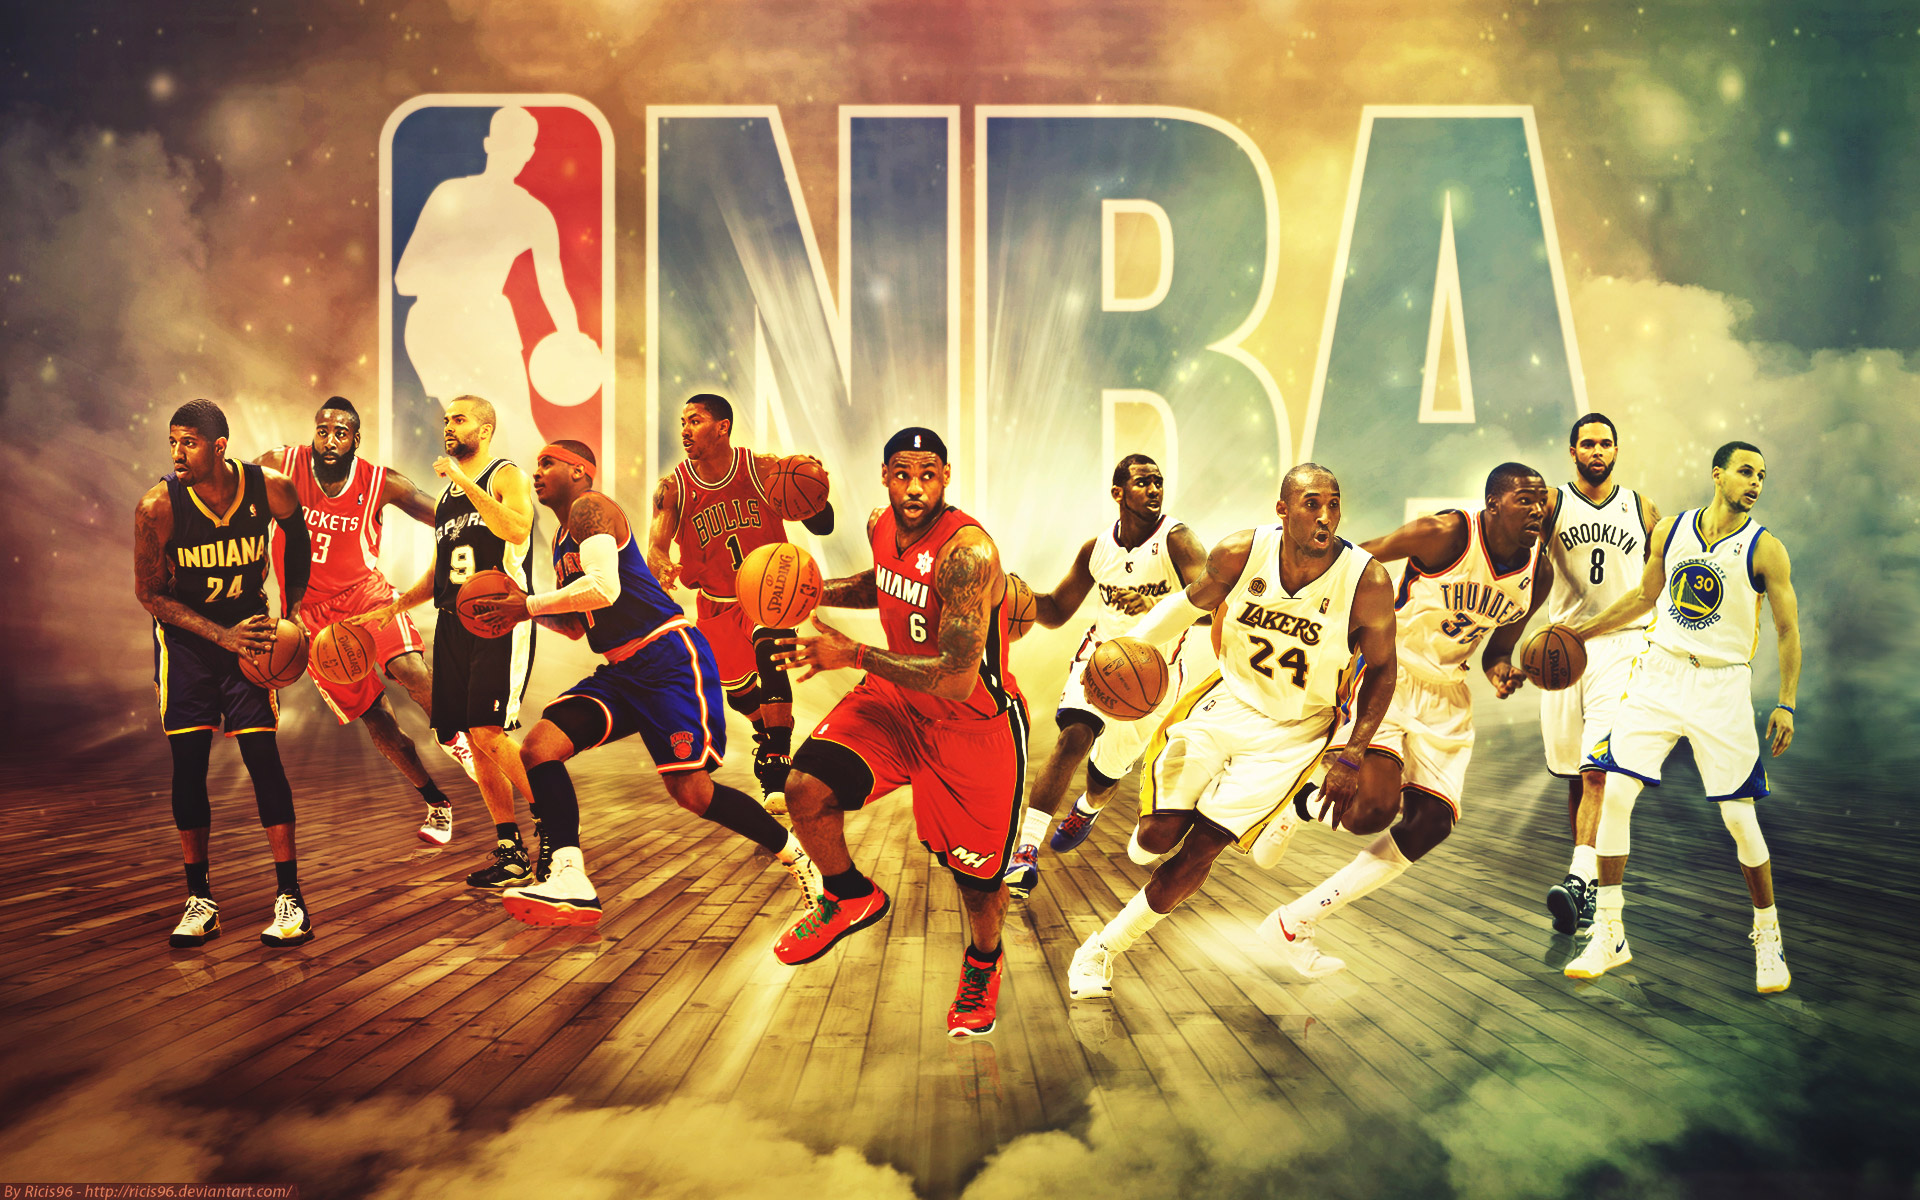 Wallpaper Of Basketball Players